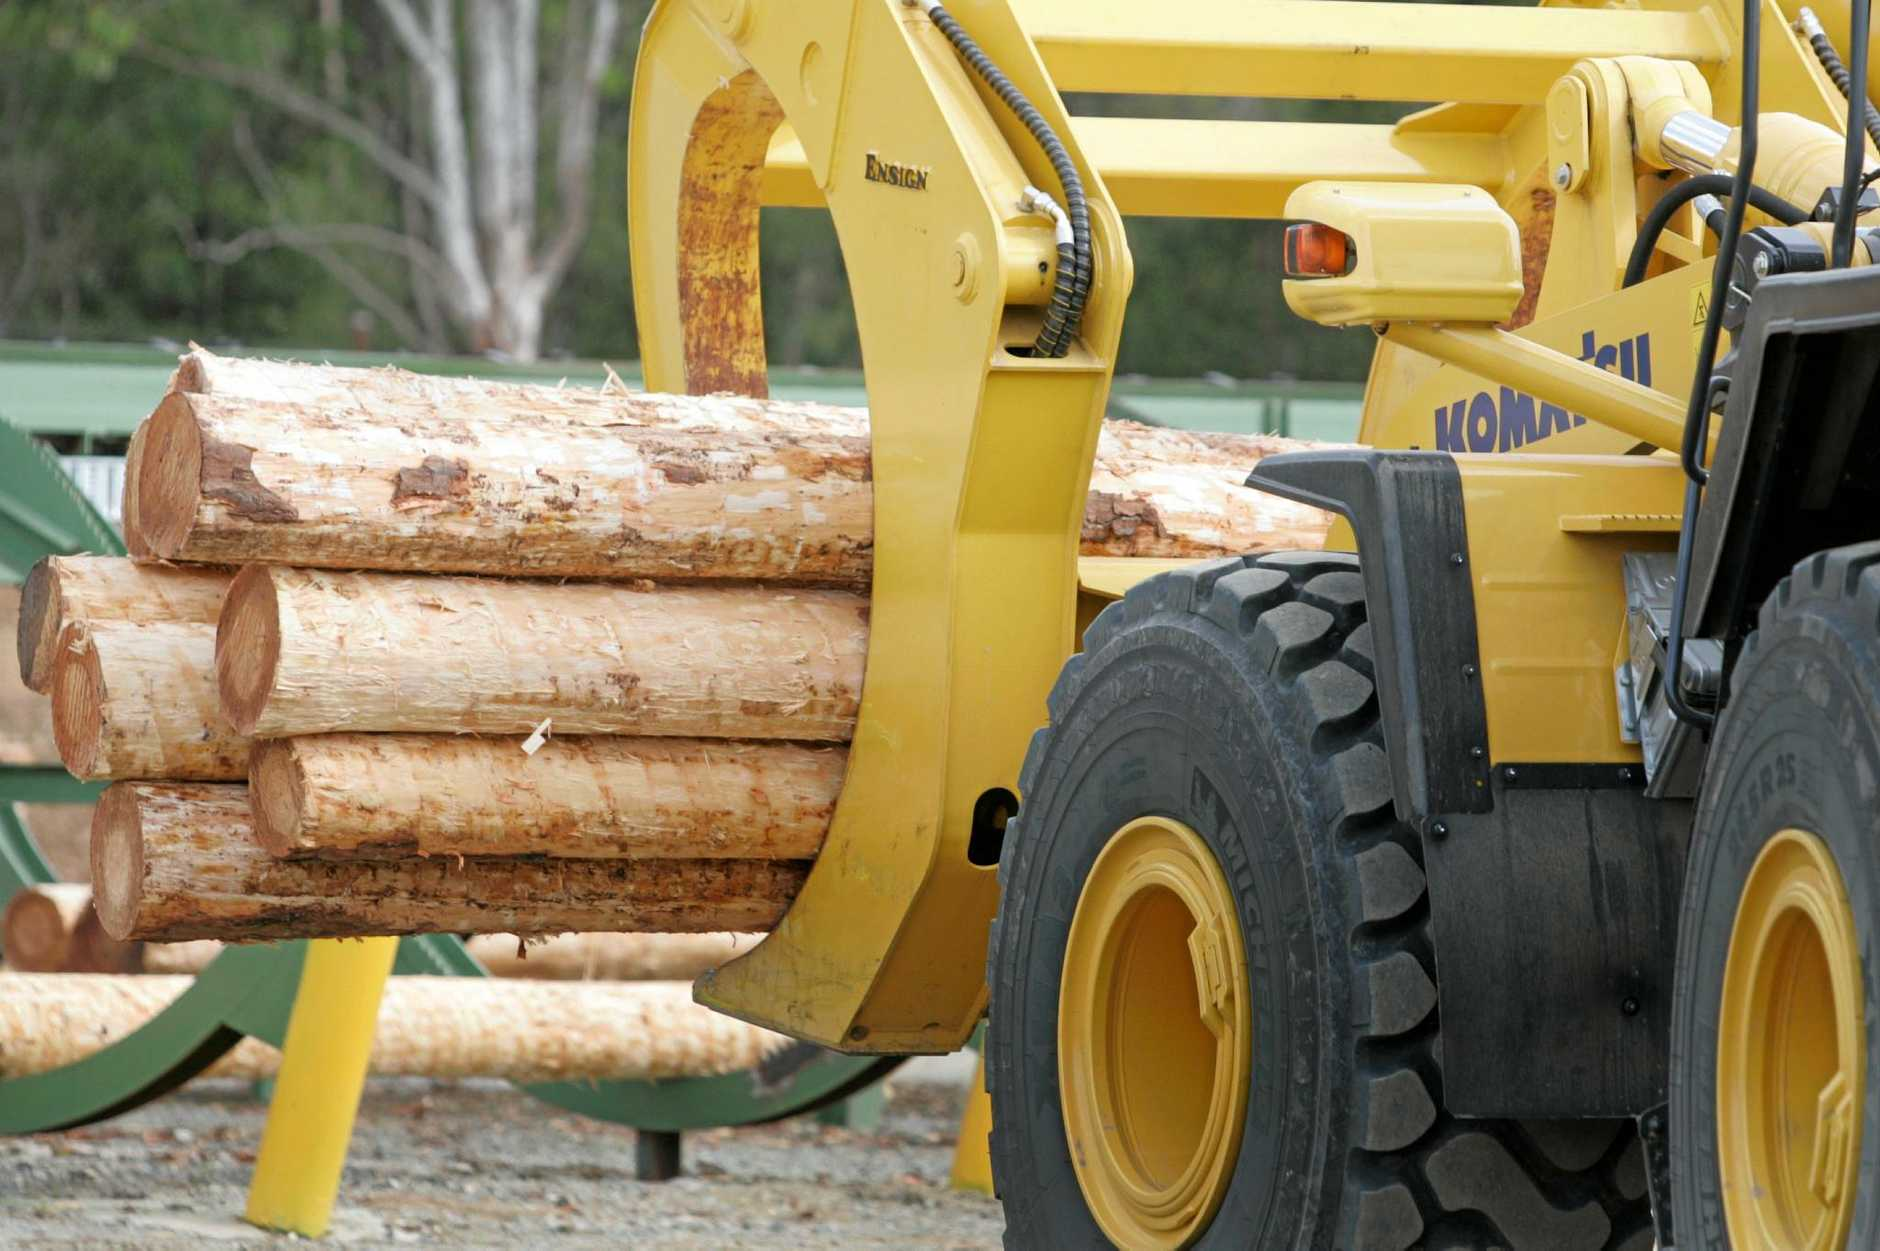 Gympie Regional Council is considering developing a wood encouragement policy.